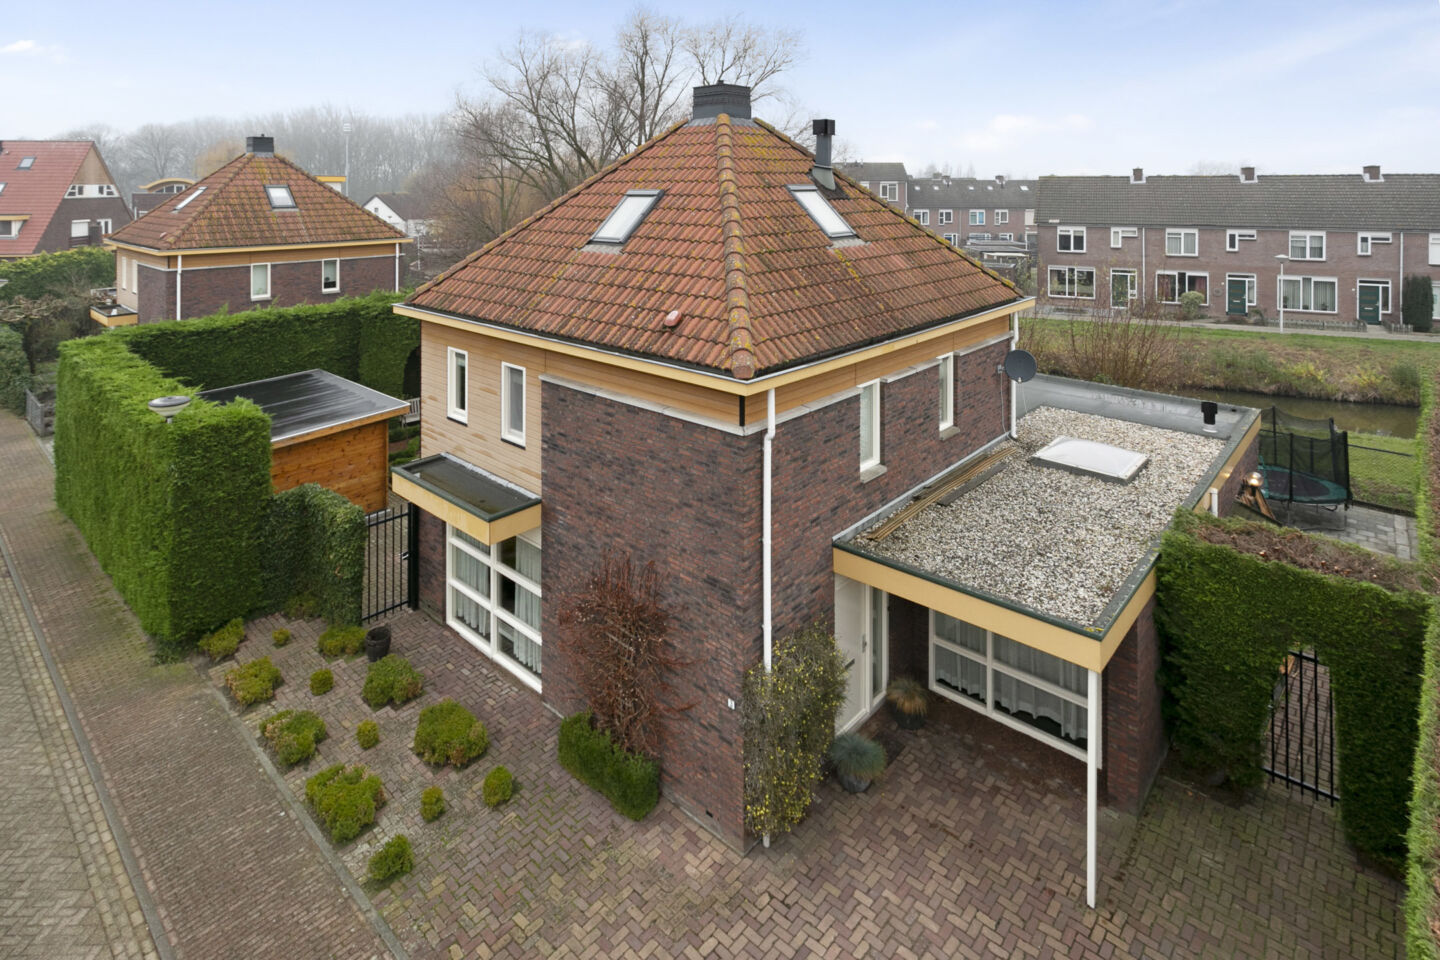 7245-jan_de_preestraat_3-steenbergen-864198556